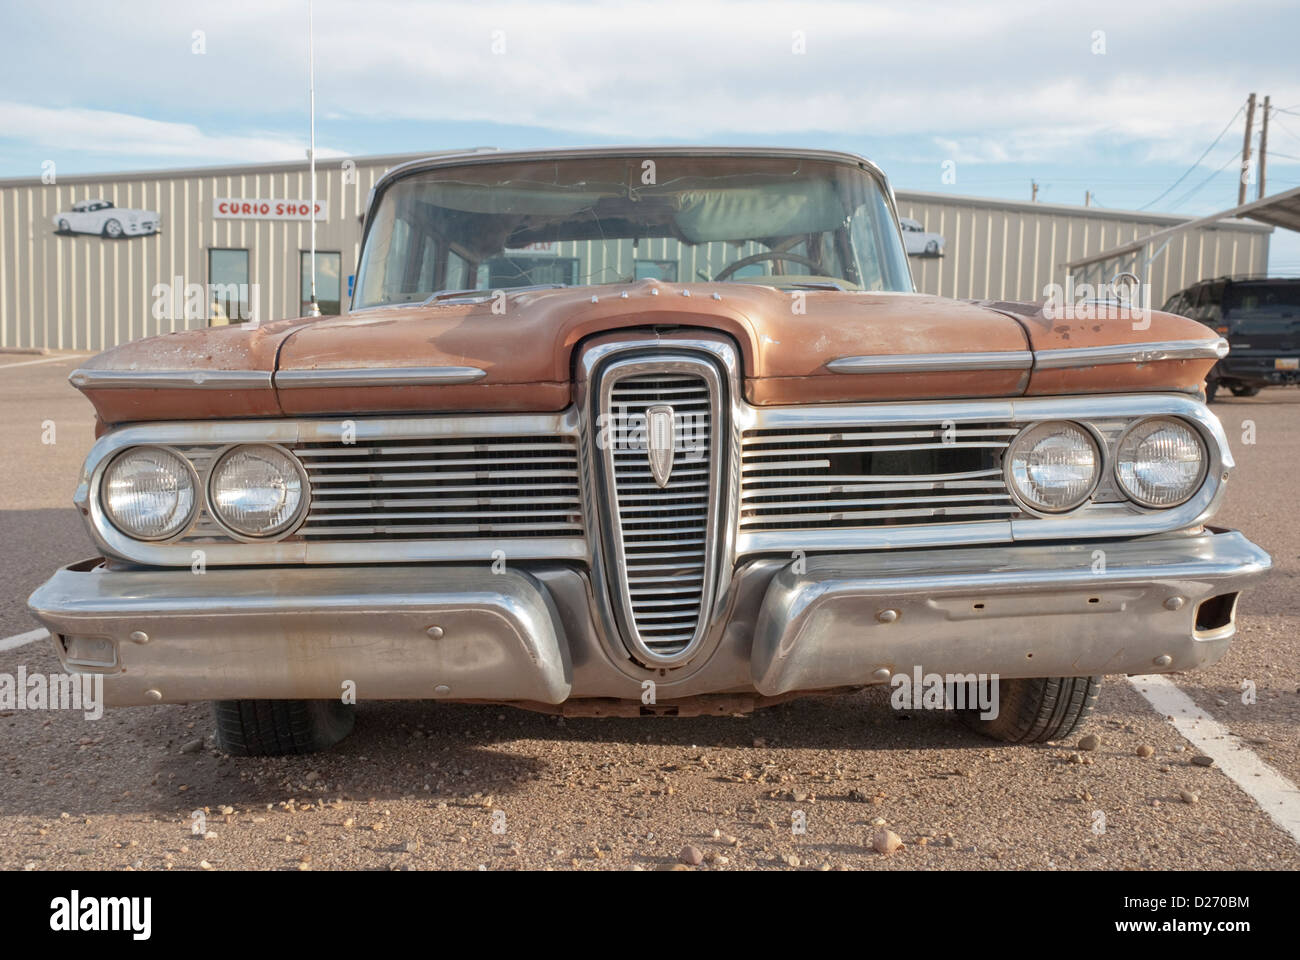 Rare old cars like this are well preserved in New Mexico climate ...